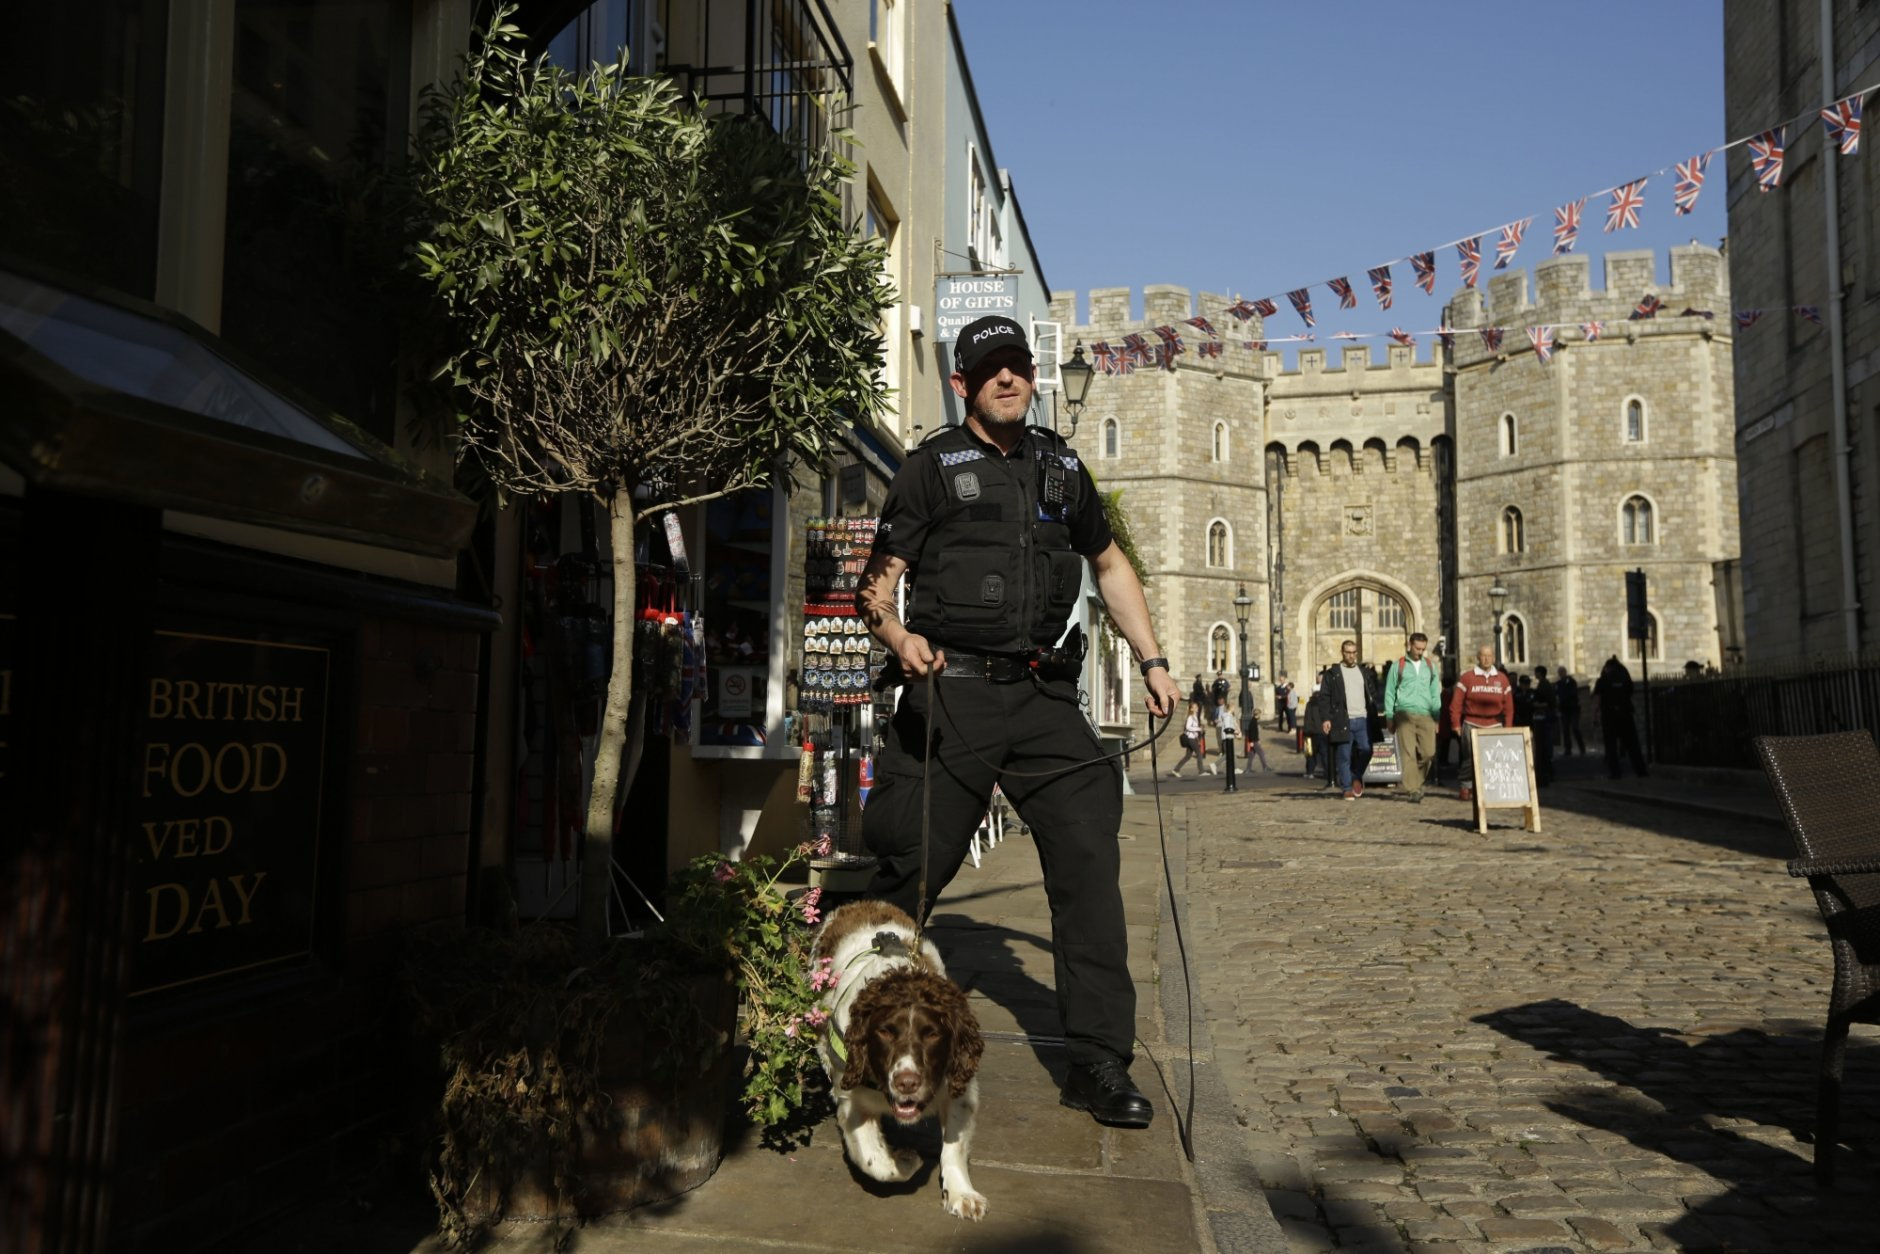 A police search dog and handler patrol outside Windsor Castle ahead of the wedding of Britain's Princess Eugenie in Windsor, England, Wednesday, Oct. 10, 2018. The 28-year-old granddaughter of Queen Elizabeth II is due to marry liquor company executive Jack Brooksbank on Friday in St. George's Chapel at Windsor Castle. (AP Photo/Matt Dunham)